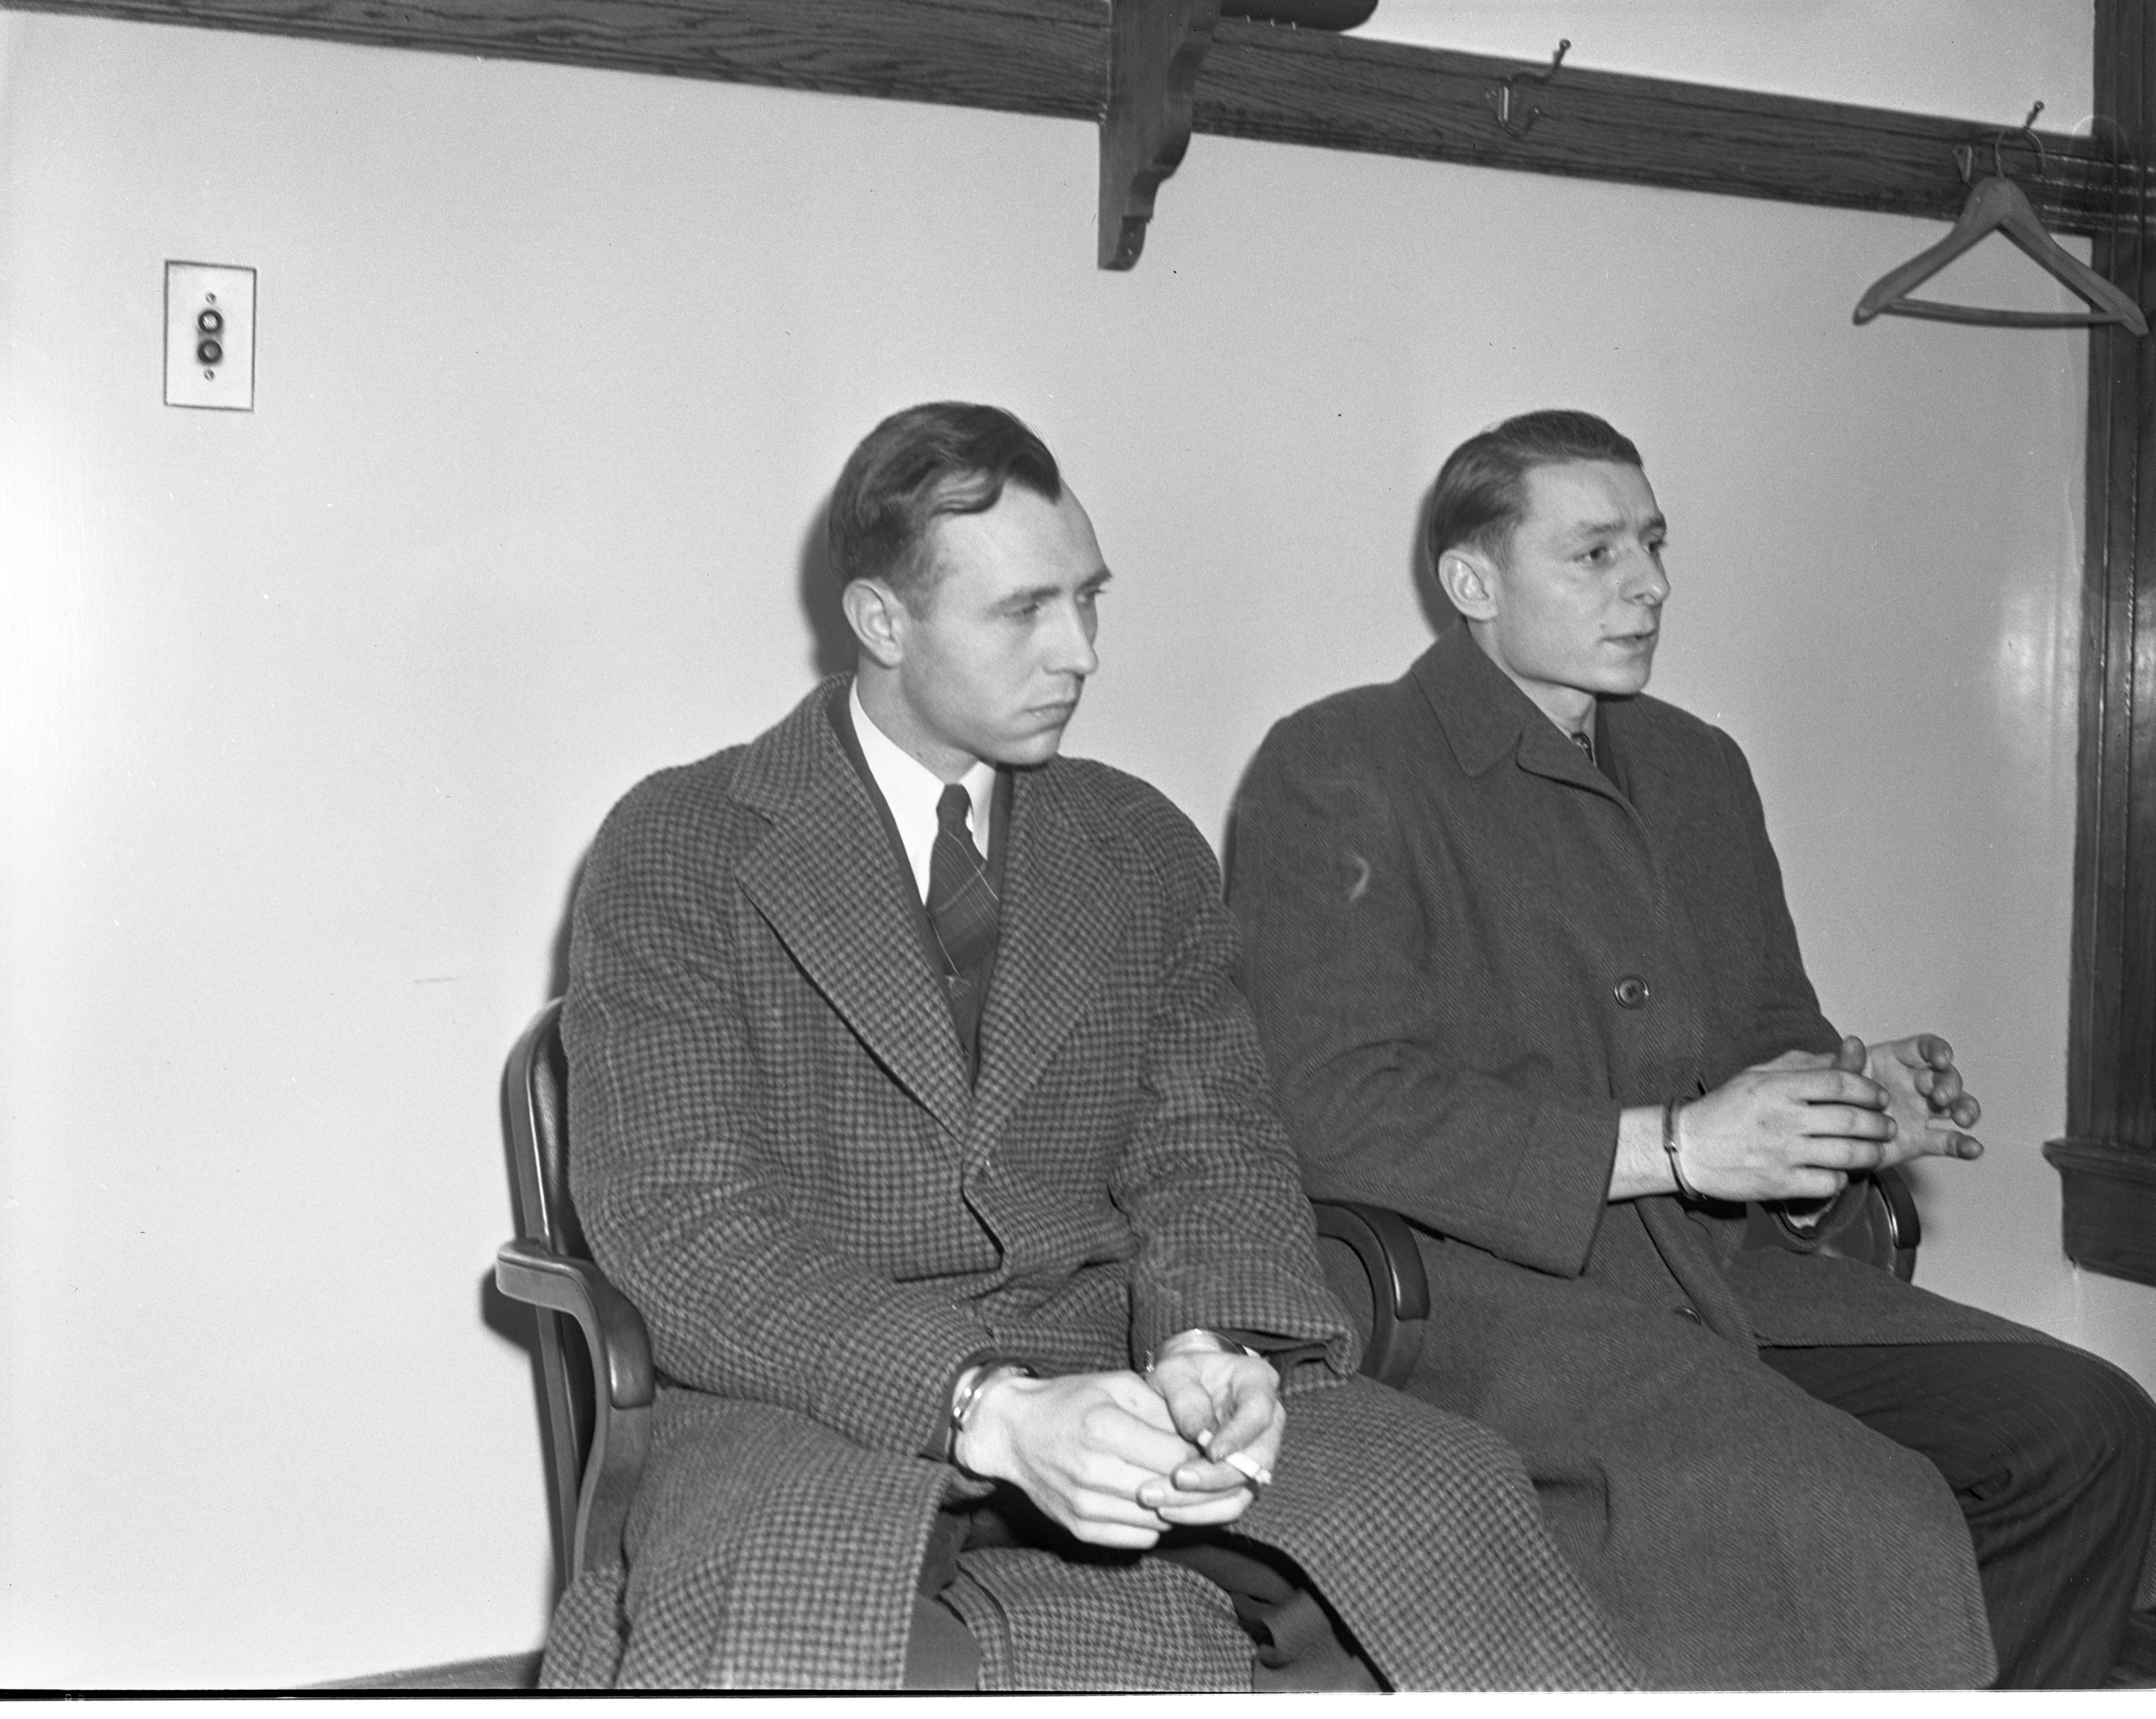 Ambrose DeHaven & Raymond Nowicki Sit Handcuffed In The Ann Arbor Police Station, January 1941 image